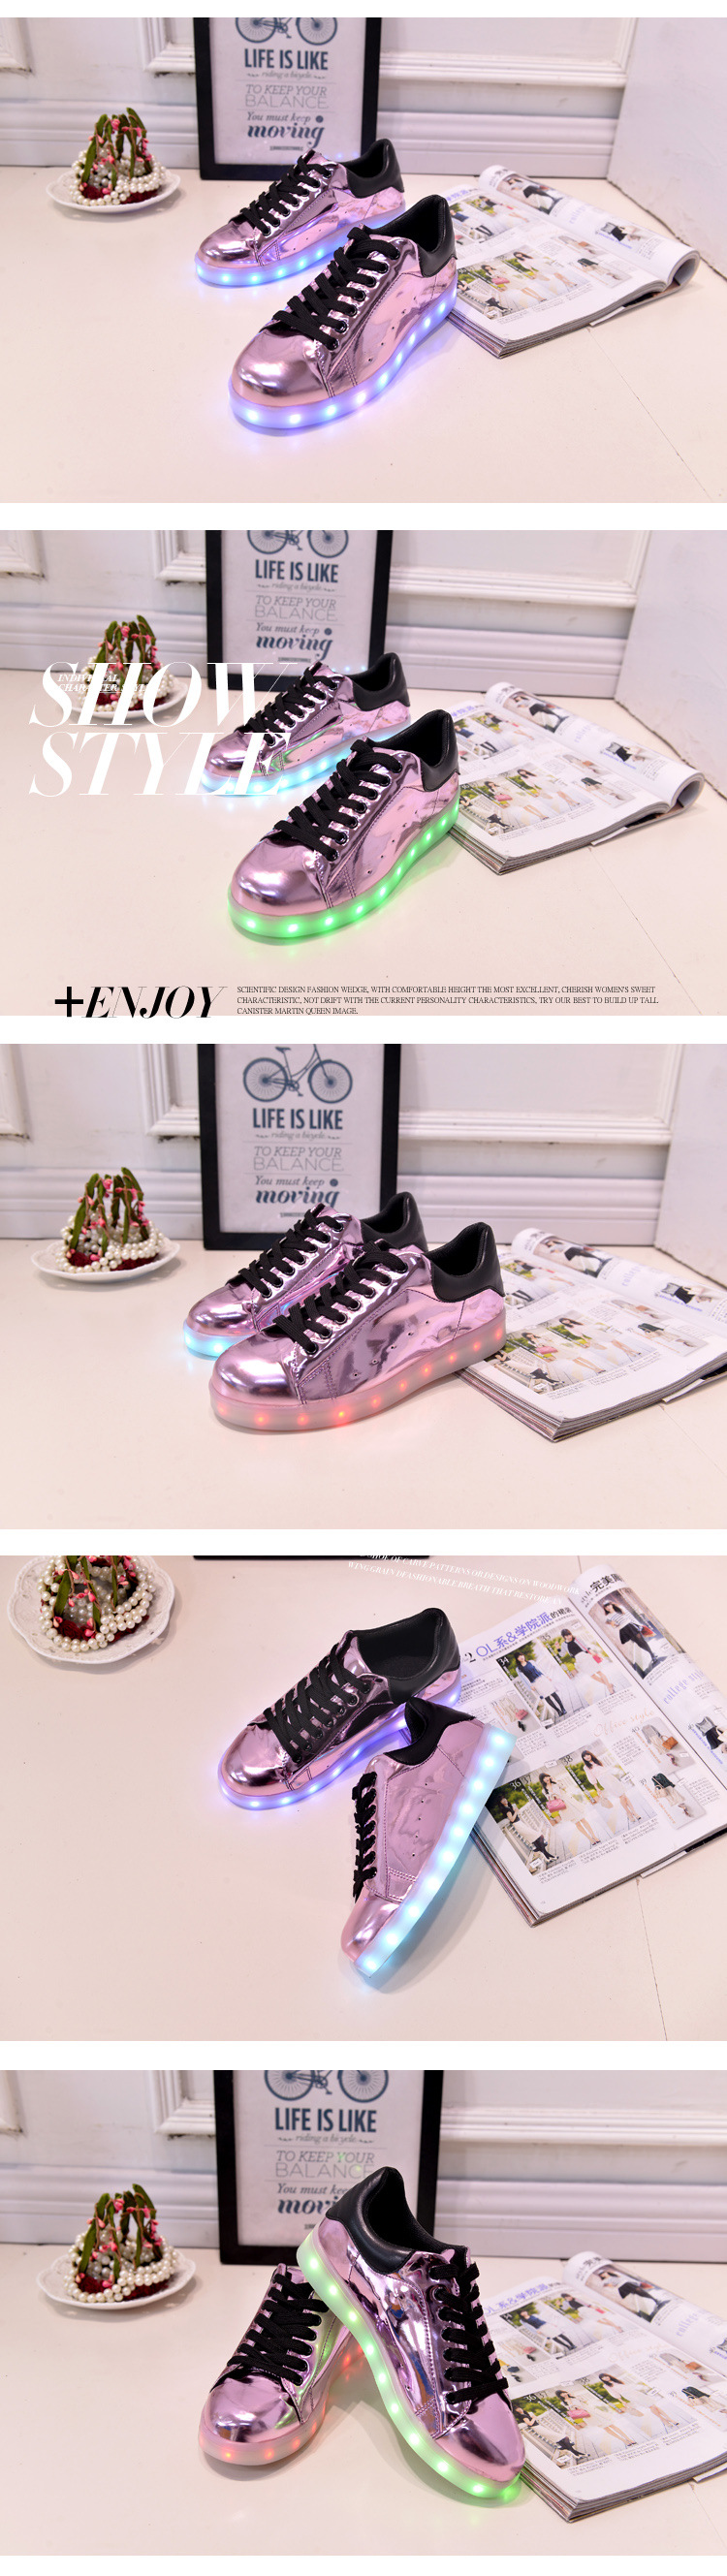 17 Baby Girls Boys LED Light Sneakers Colorful USB Charging for Kids Flashing Casual Flat students children Luminous Shoes 8